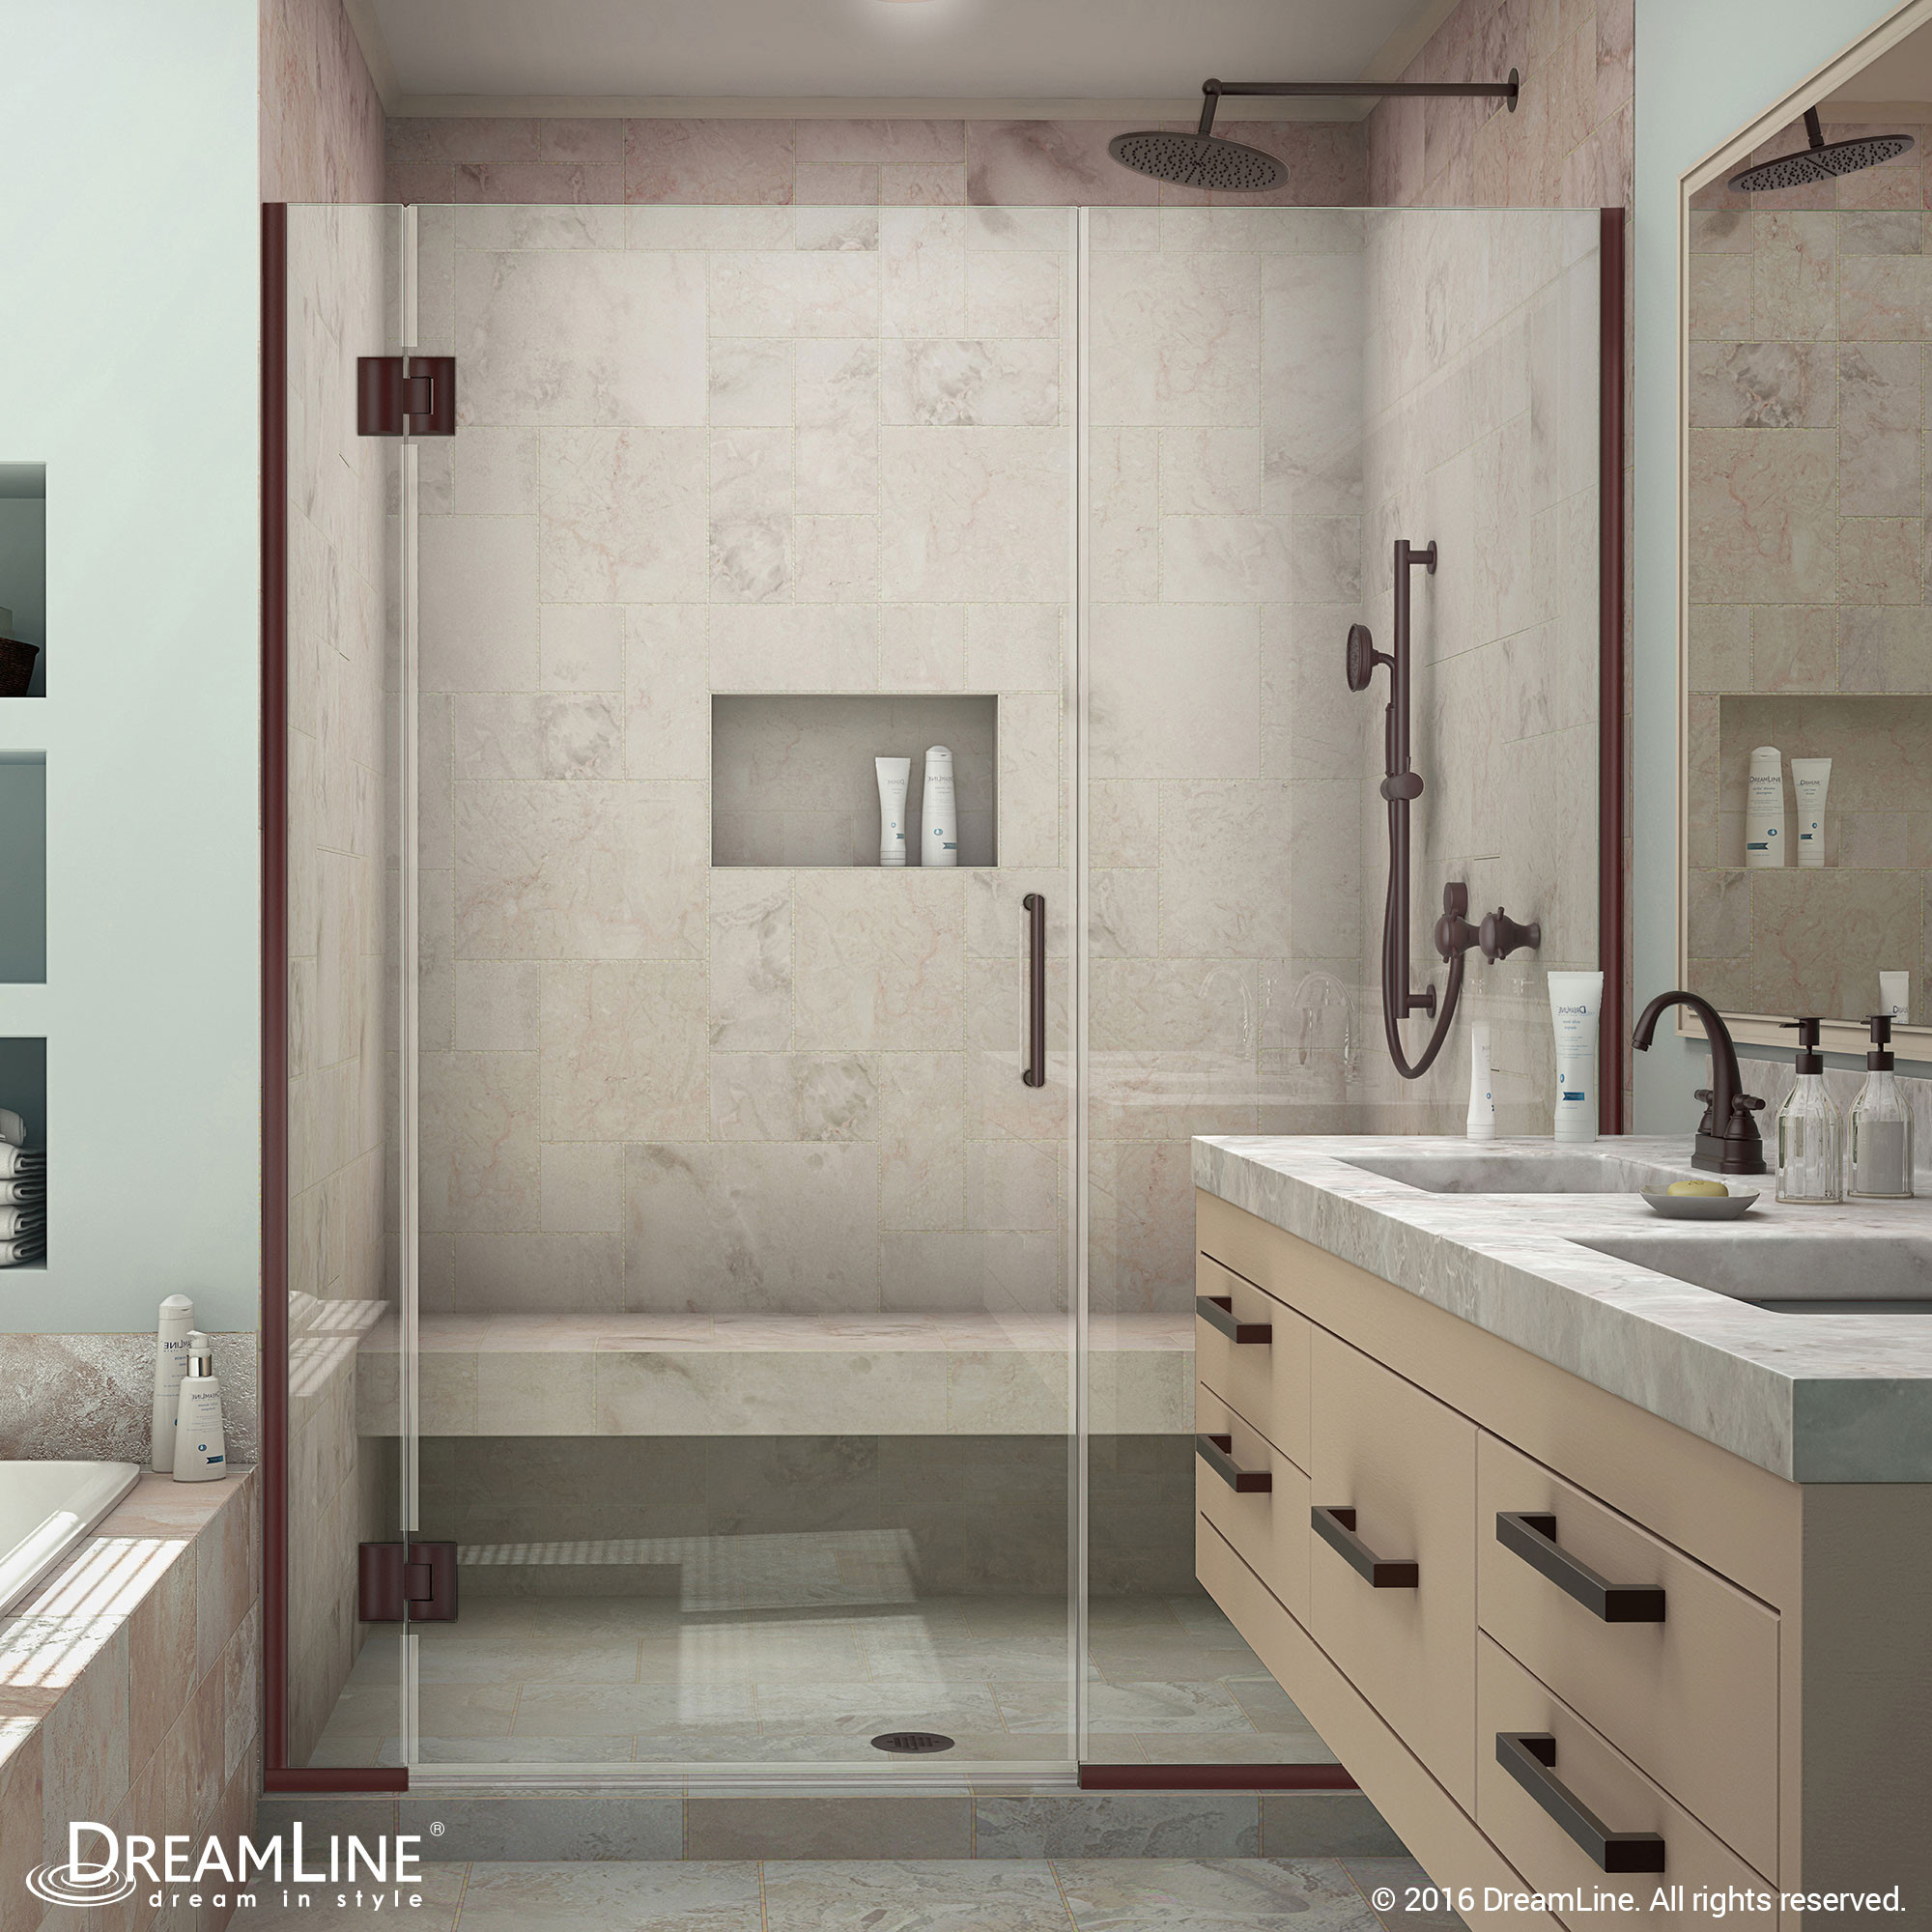 DreamLine D1282272-06 Oil Rubbed Bronze Unidoor-X 56 - 56 1/2 in. W x 72 in. H Hinged Shower Door